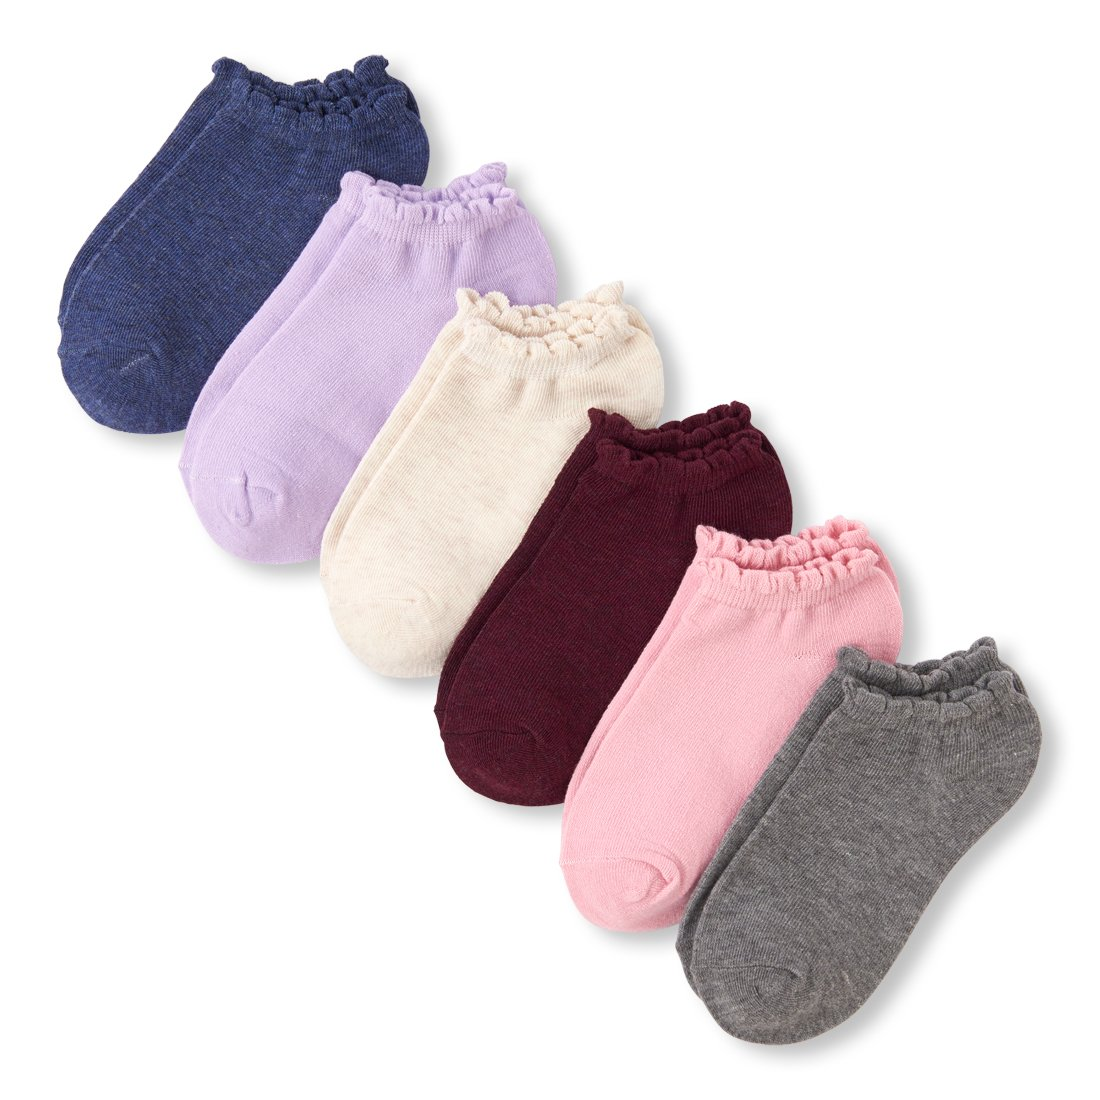 The Children's Place Girls' Big 6 Pack Scalloped Ankle Sock, Multi CLR, L 3-6